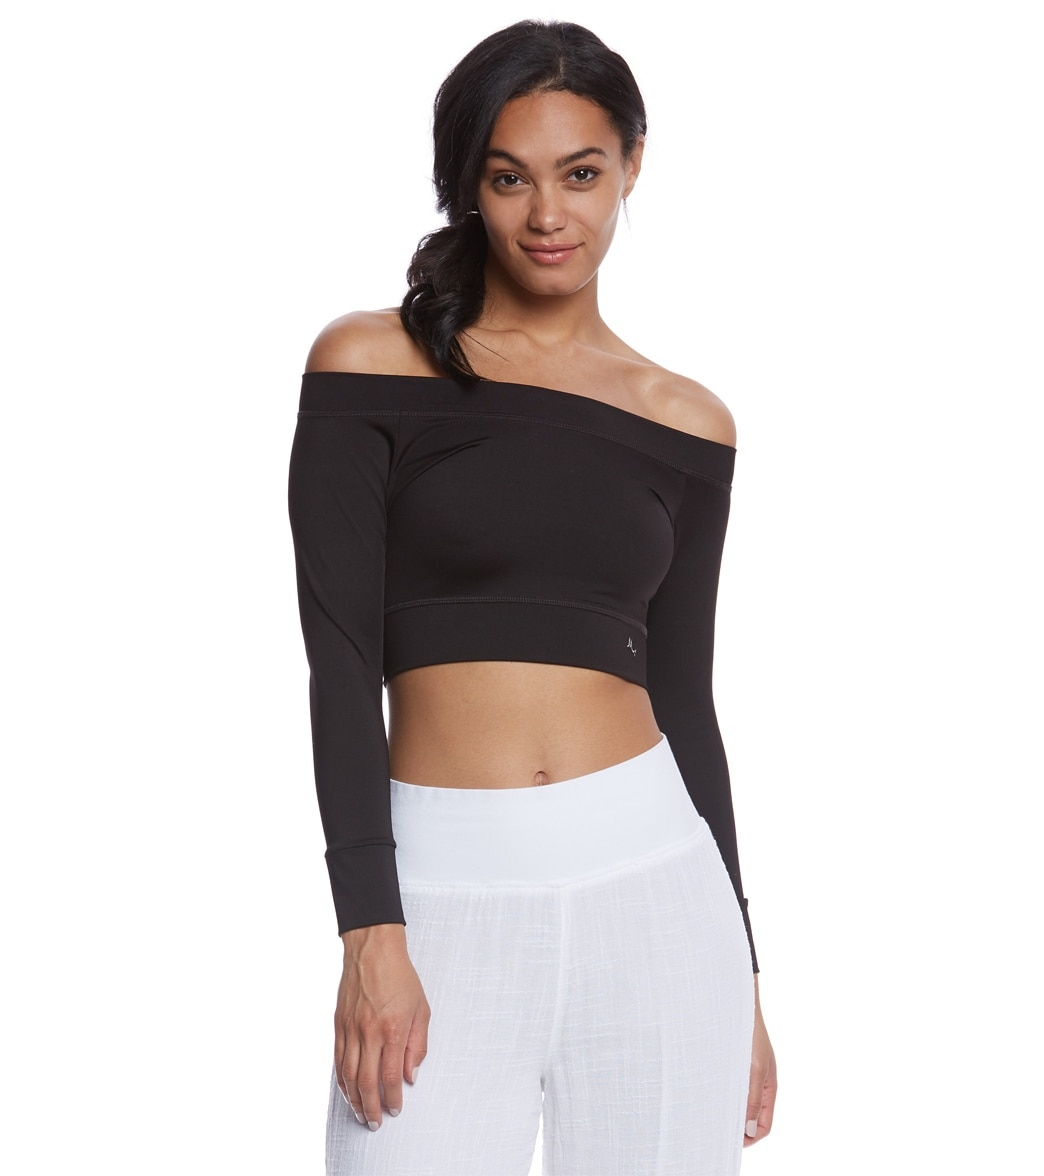 8c355bc1792b7 Mika Yoga Wear Chloe Tie Back Crop Long Sleeve at YogaOutlet.com ...